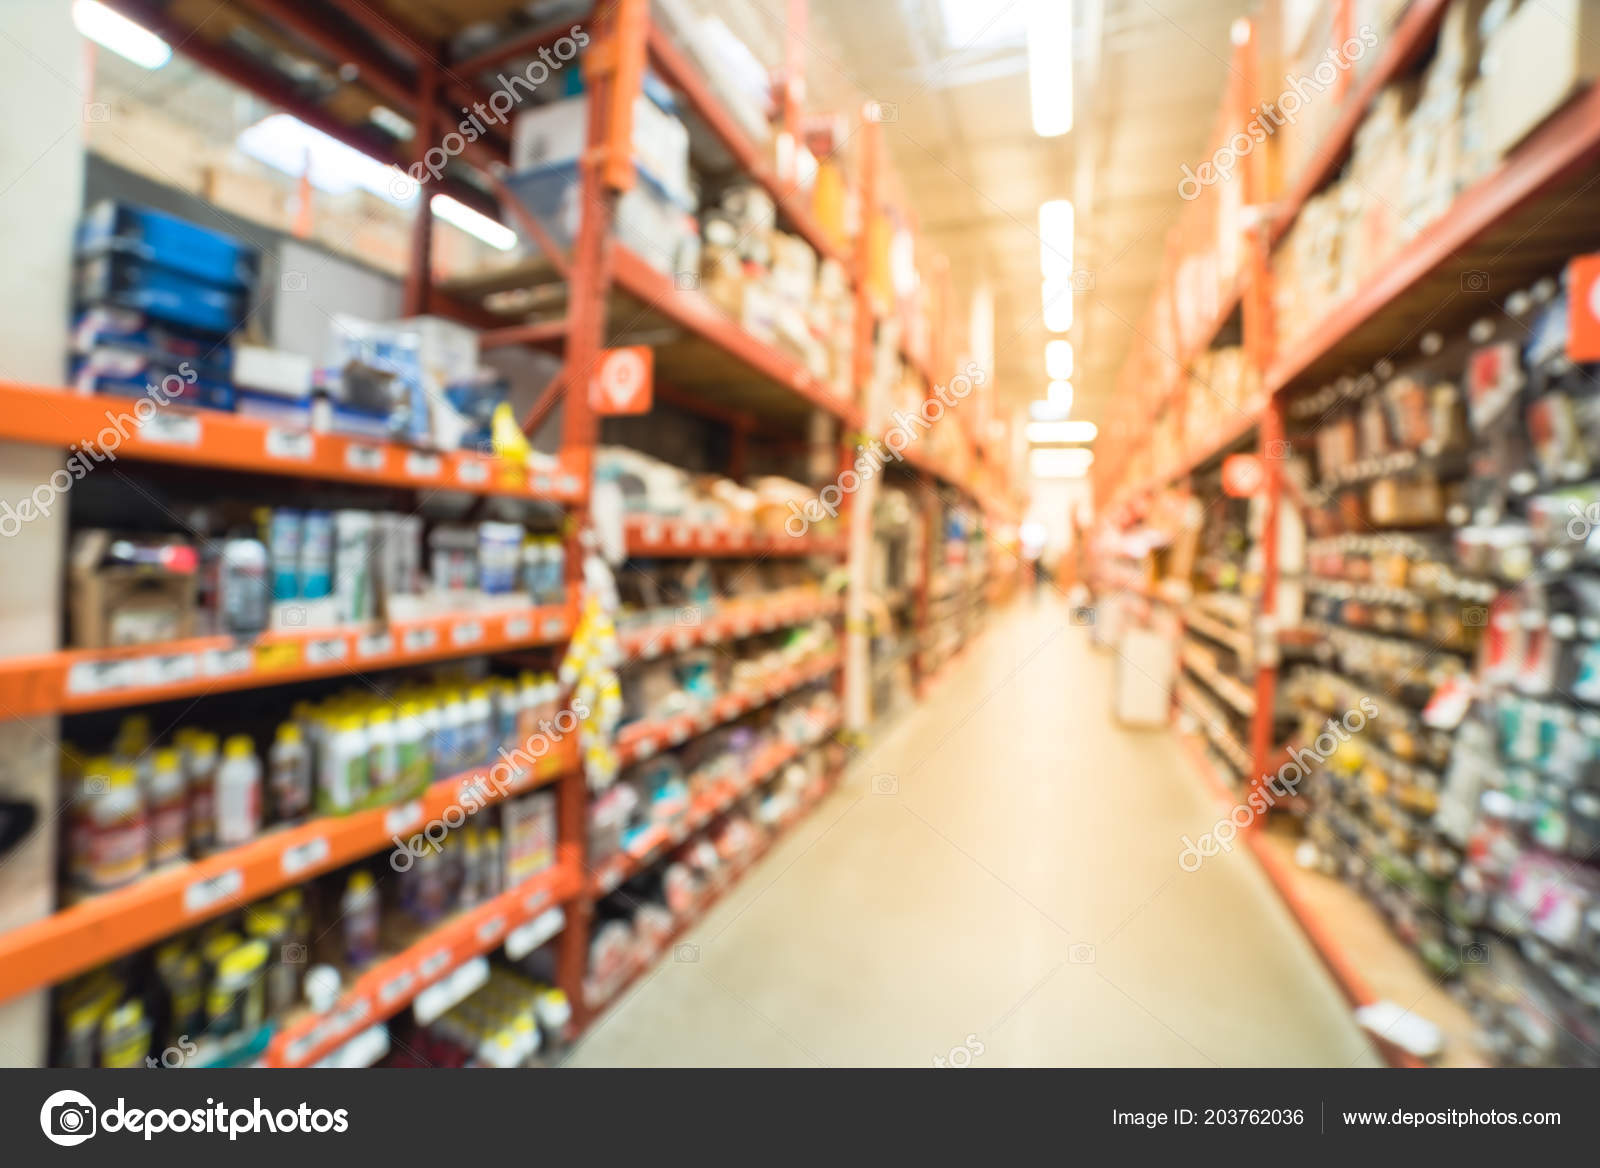 Blurred A Large Hardware Store, Tools And Material. Defocused Interior Home  Improvement Retailer With Racks Of Door Hardware, Weather Proofing And  Lockset ...